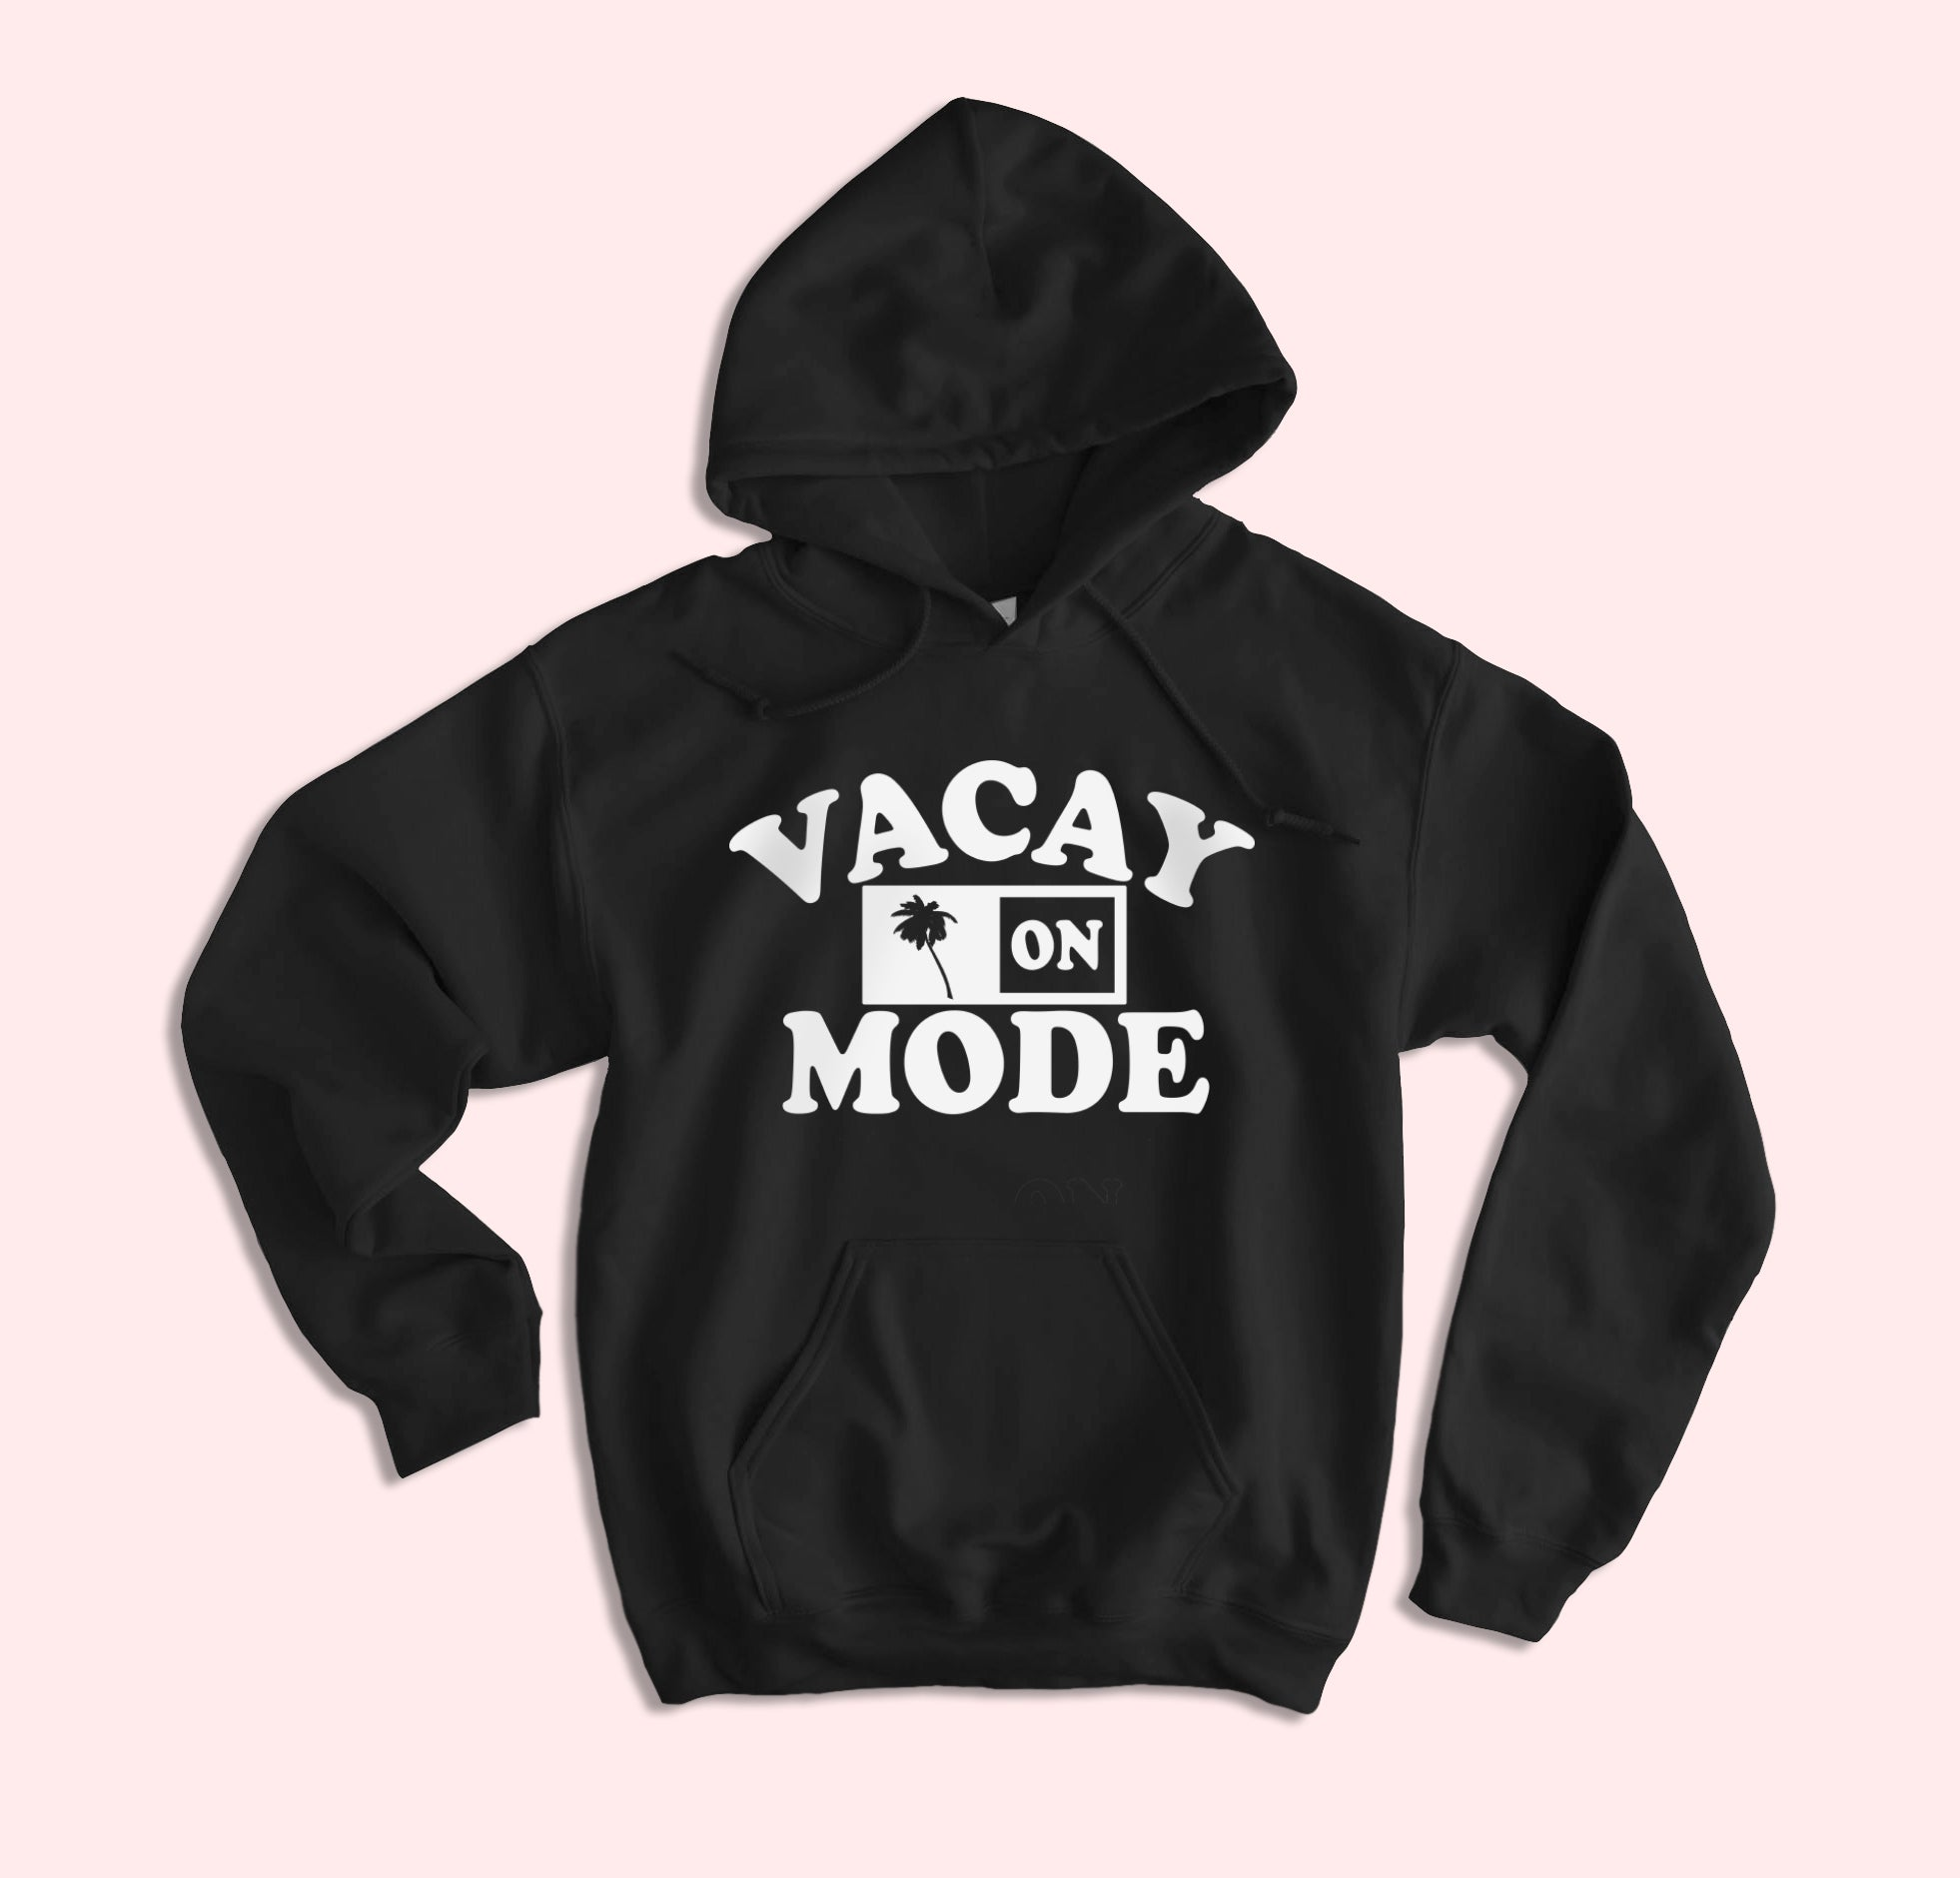 Vacay Mode On Hoodie